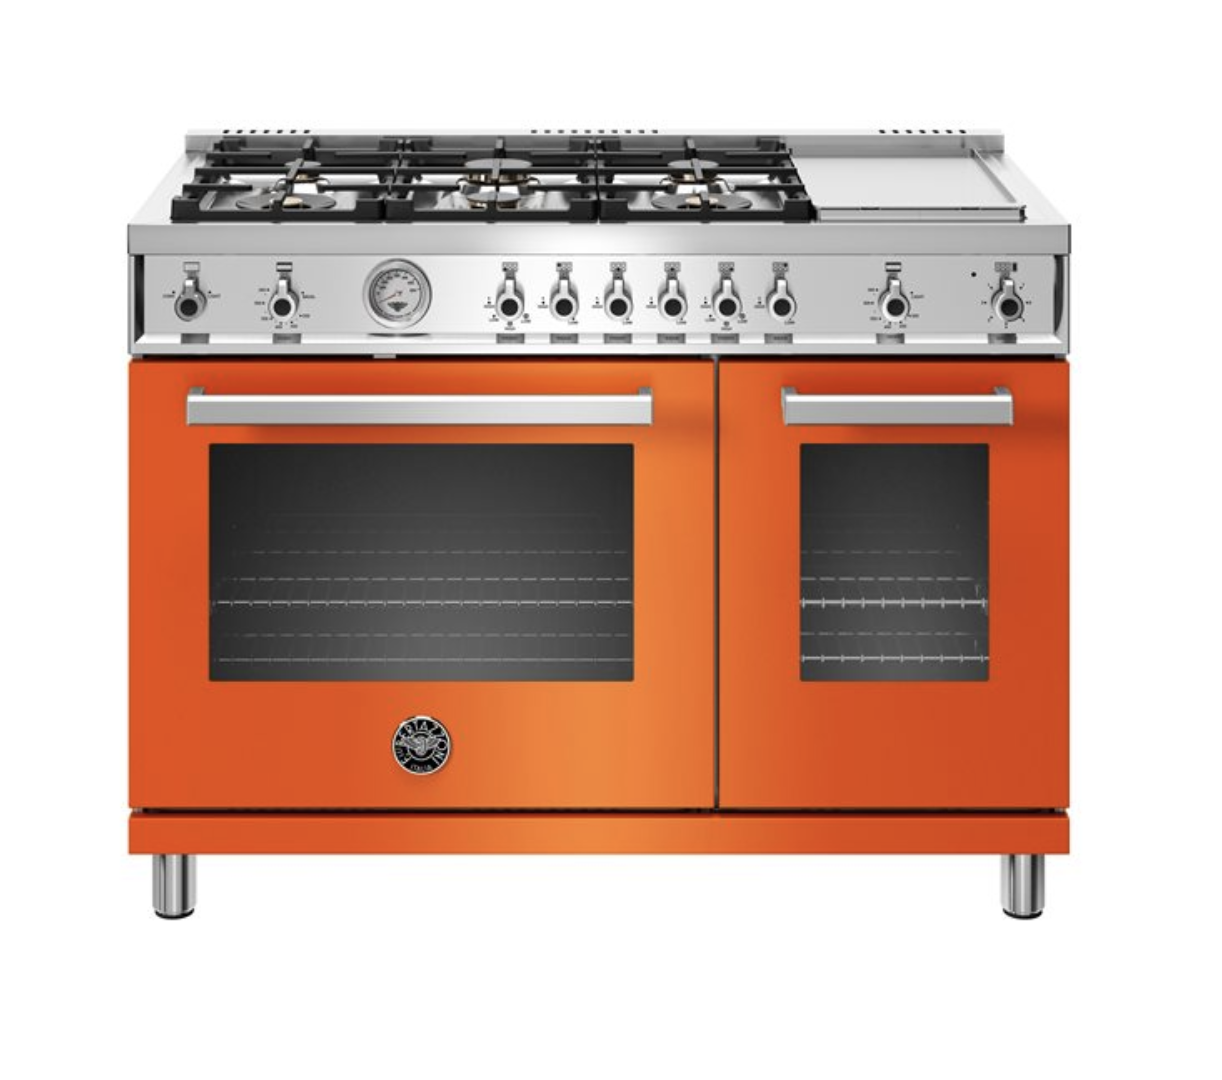 "bertazzoni's 48"" all-gas range  offers different colored panels such as black, white, yellow, orange, and red to liven up your space"